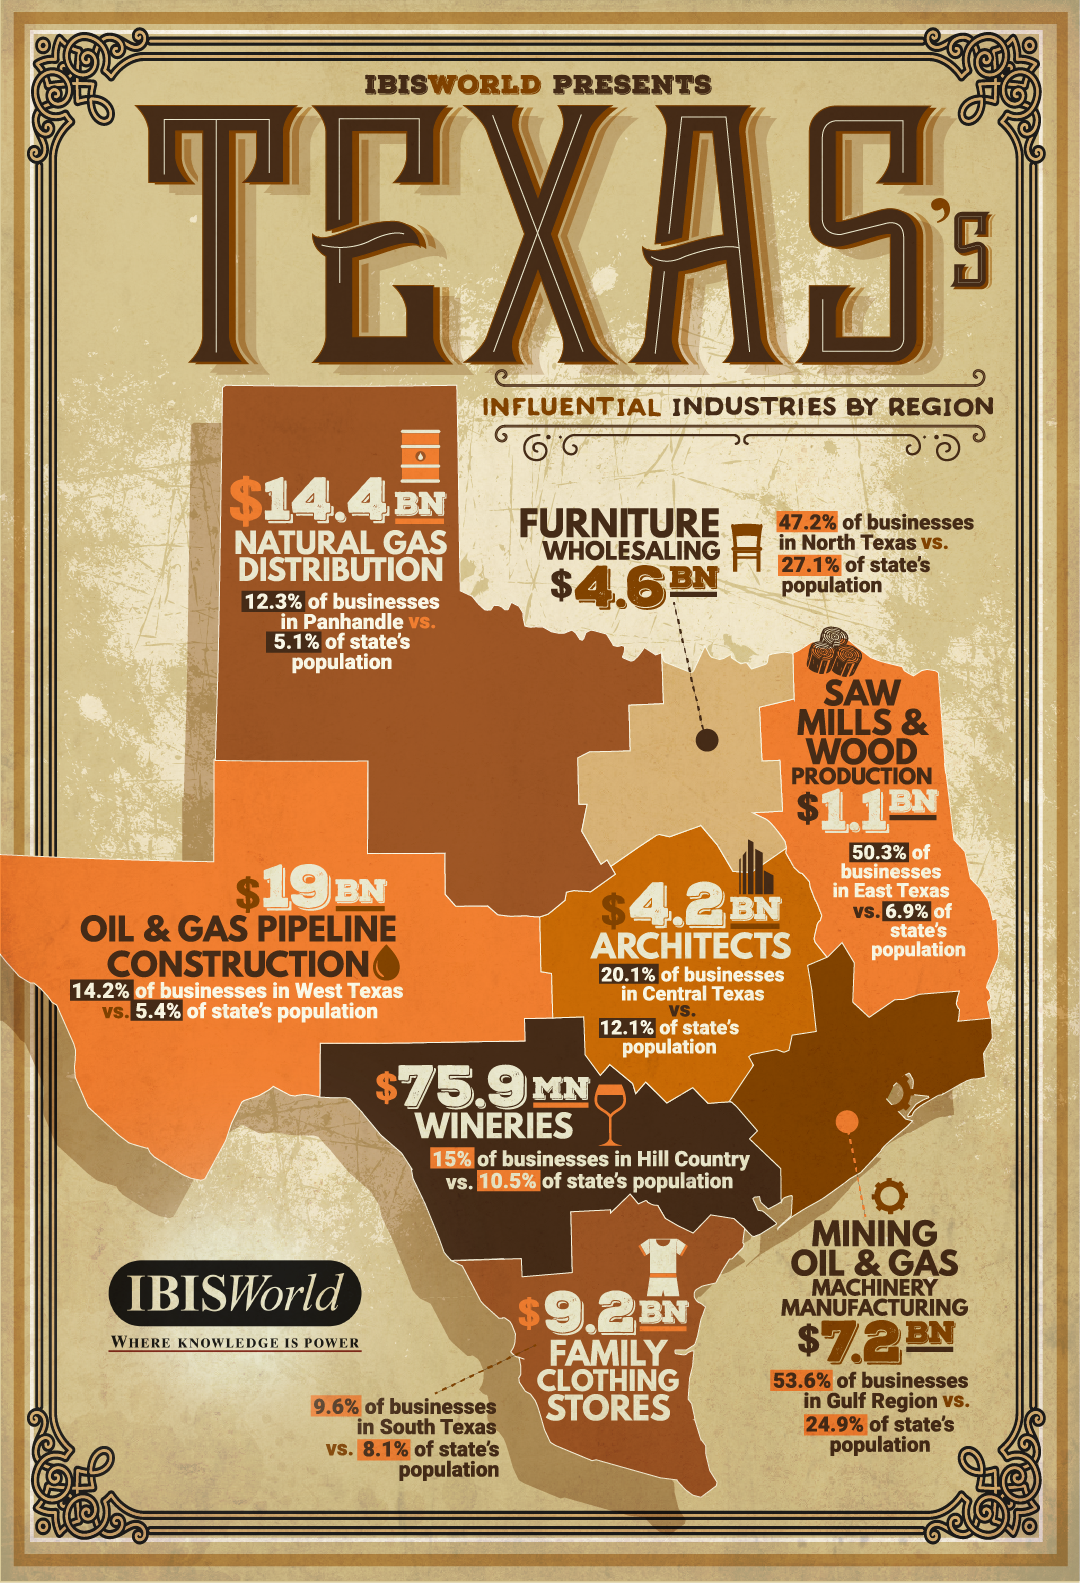 Influential Industries in Texas by Region